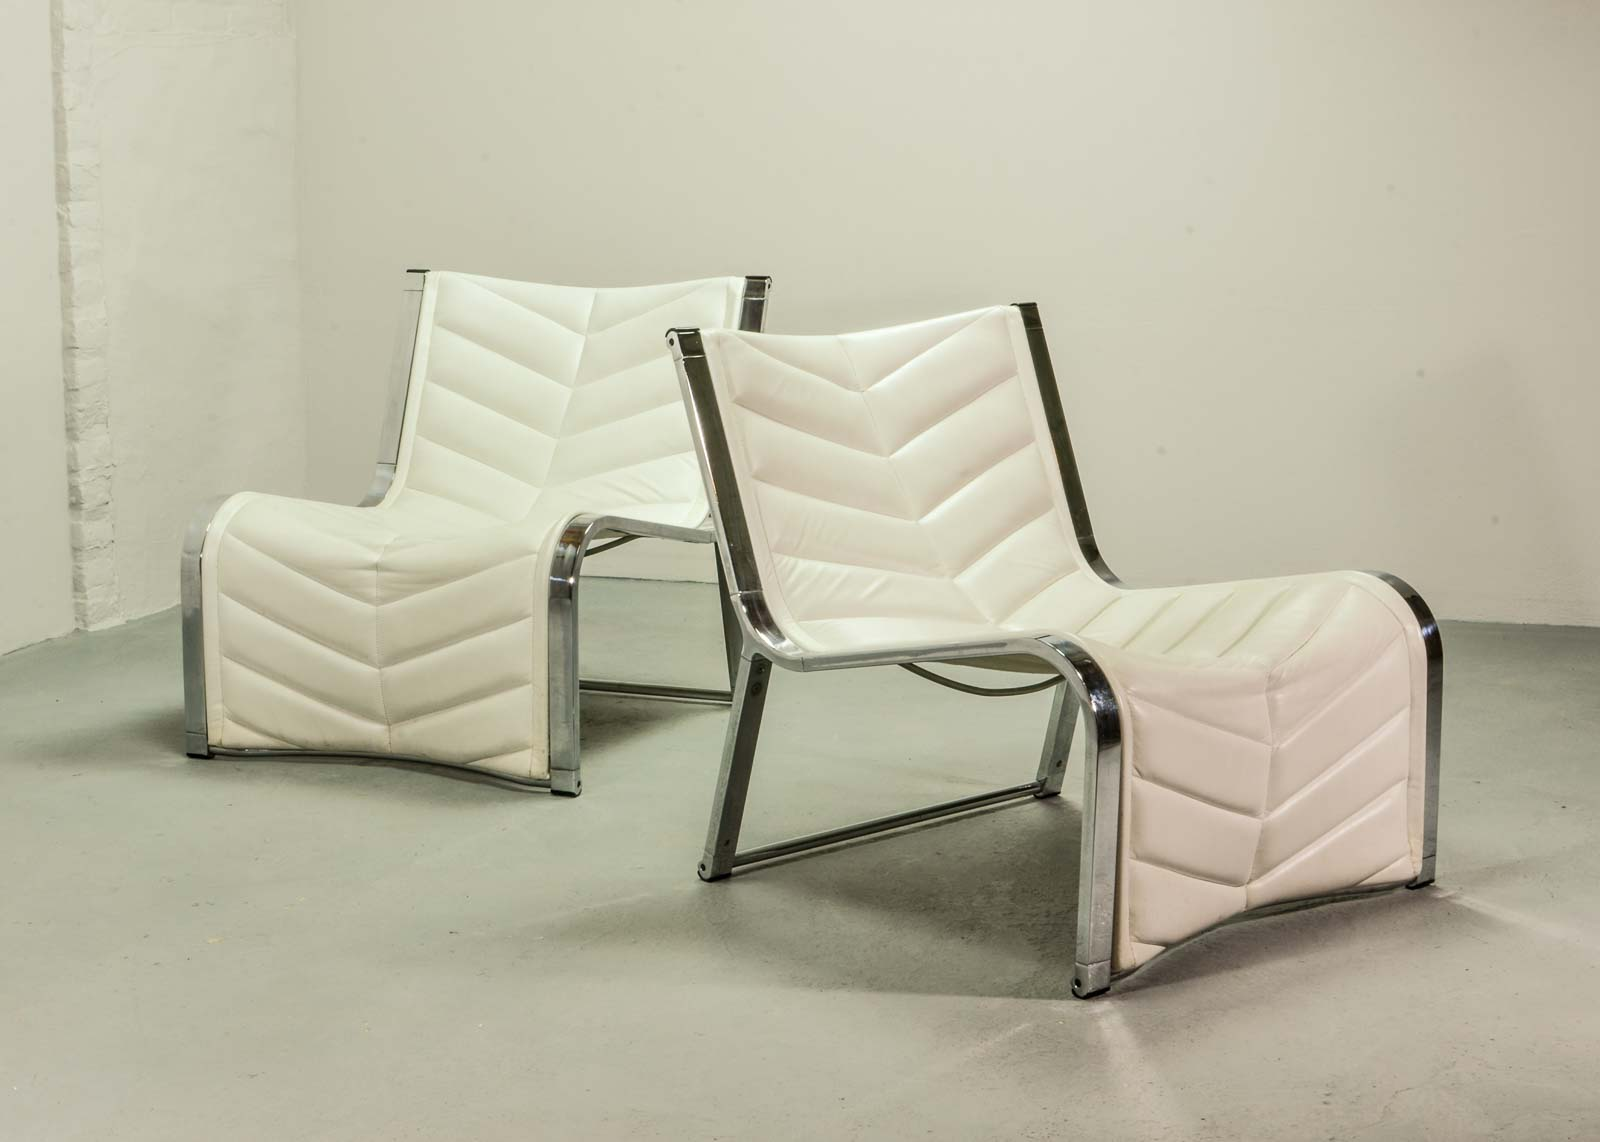 Luxurious Set Of Chrome And White Leather Lounge Chairs By Rossi De  Albizzate